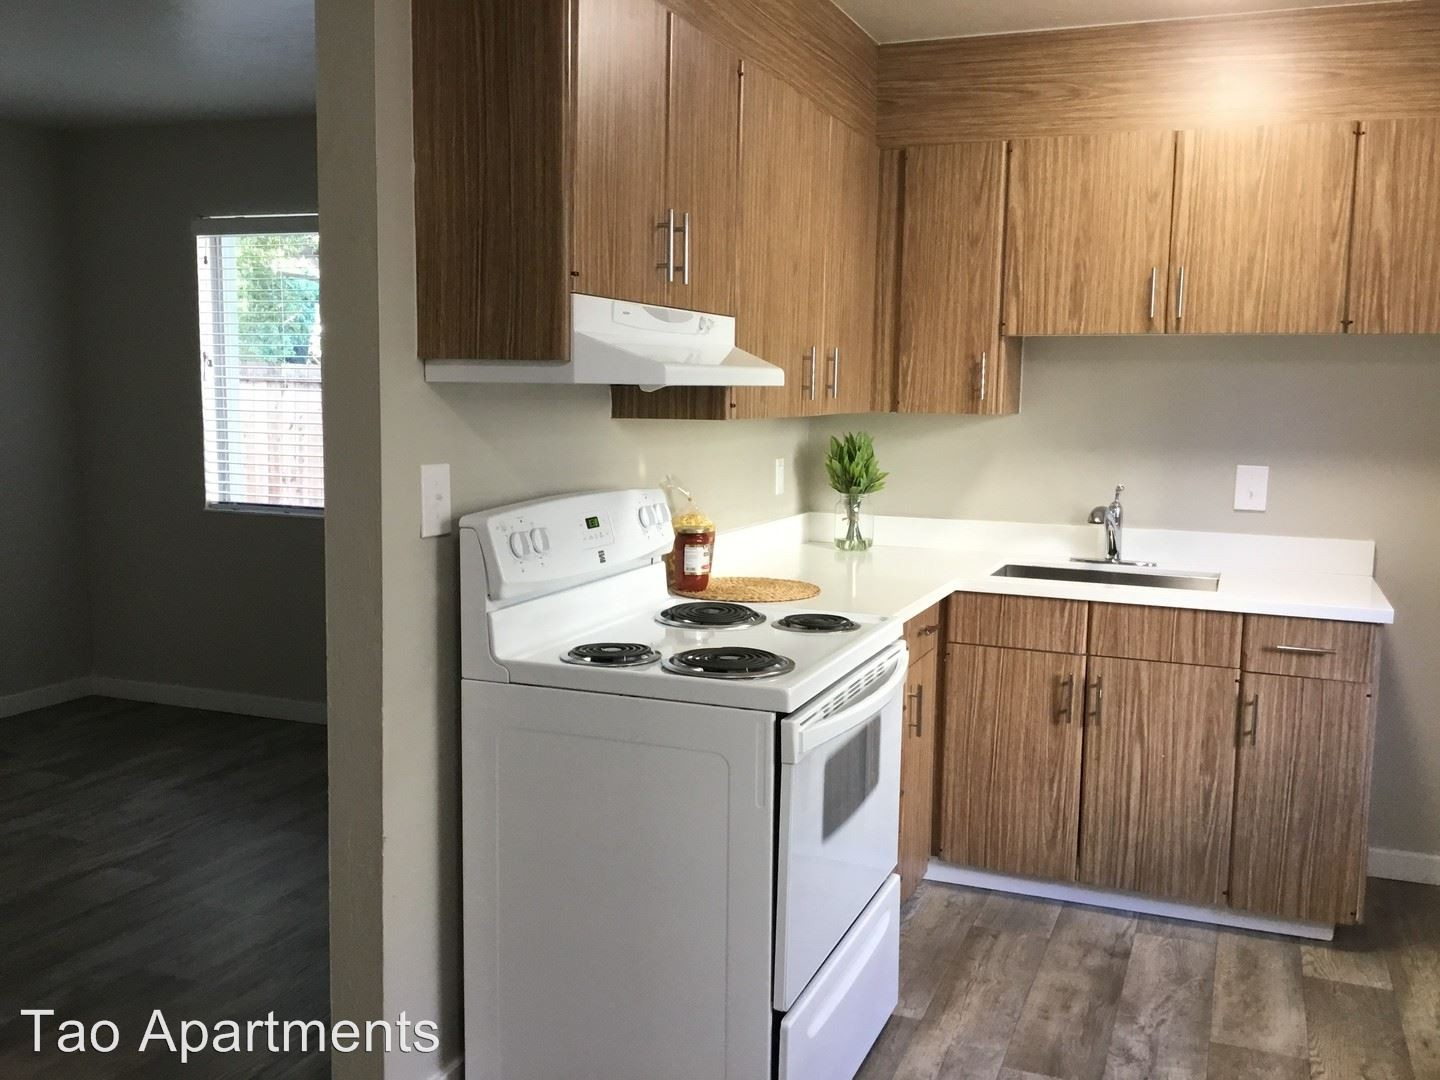 Renting Apartments Apartments For Rent In San Jose For 2 100